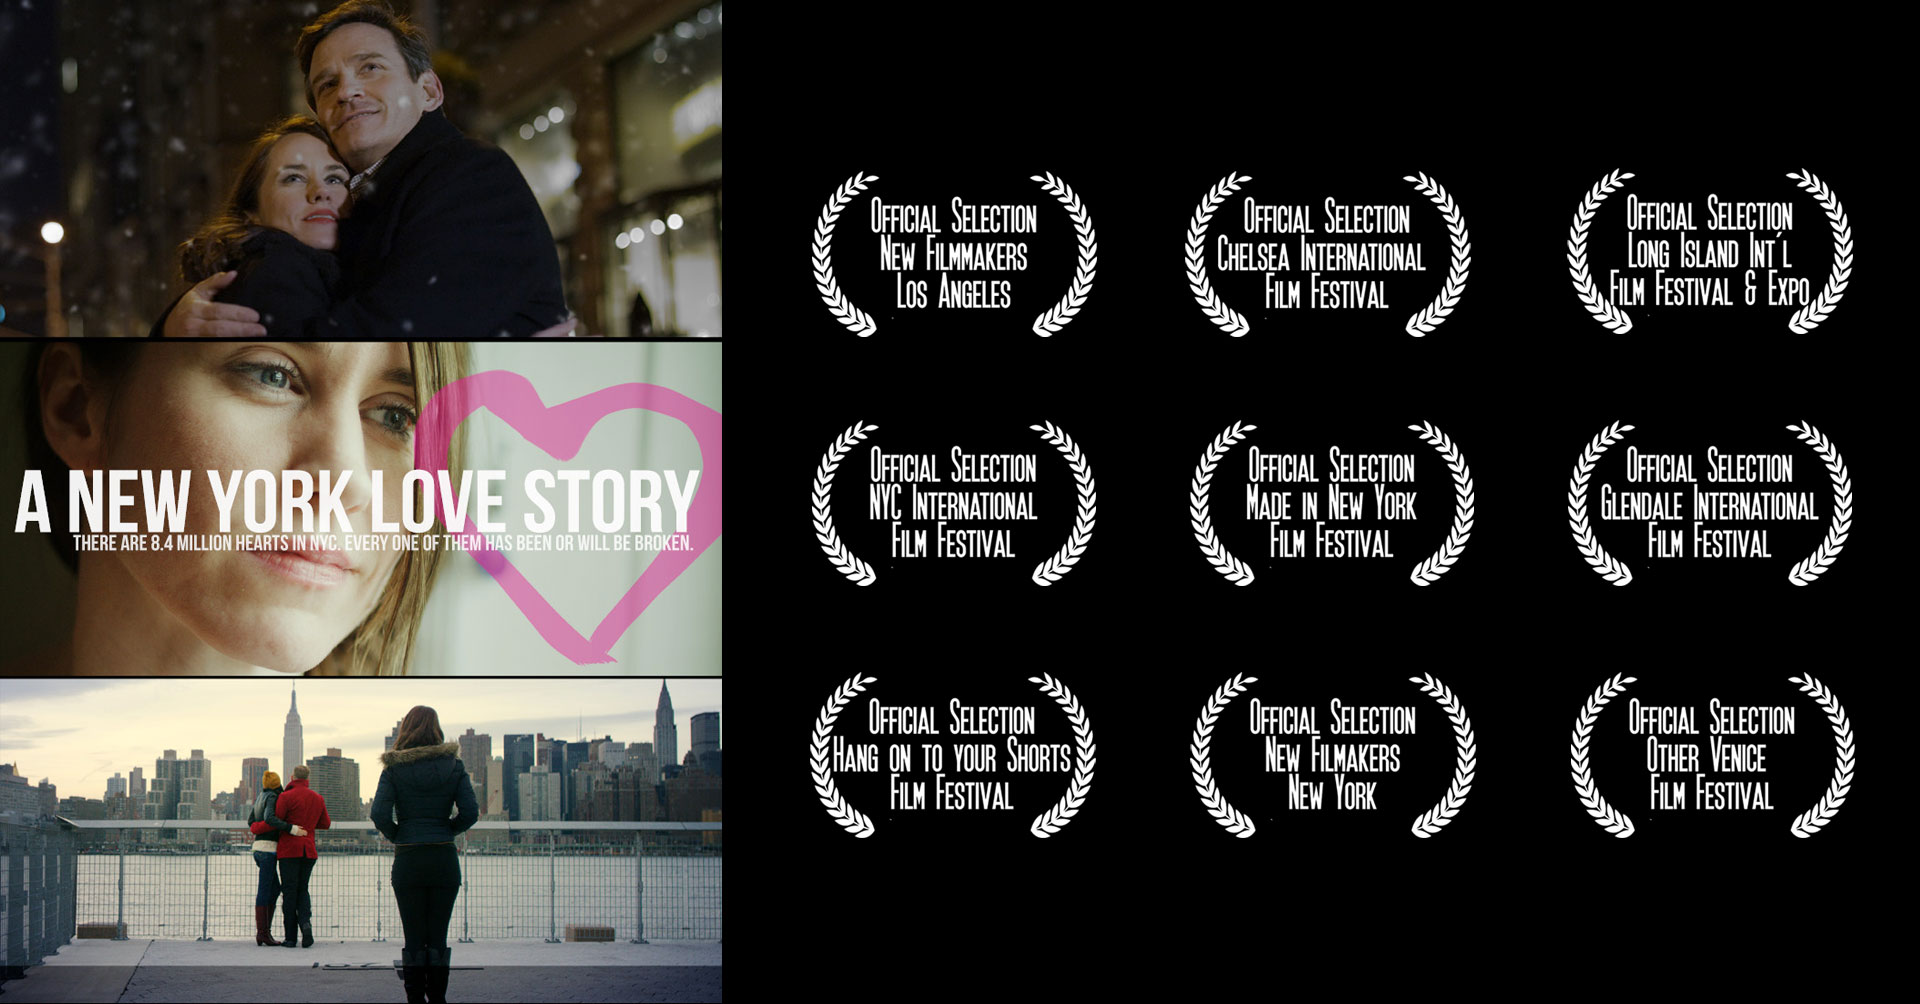 Film A New York Love Story by Patrick Ortman